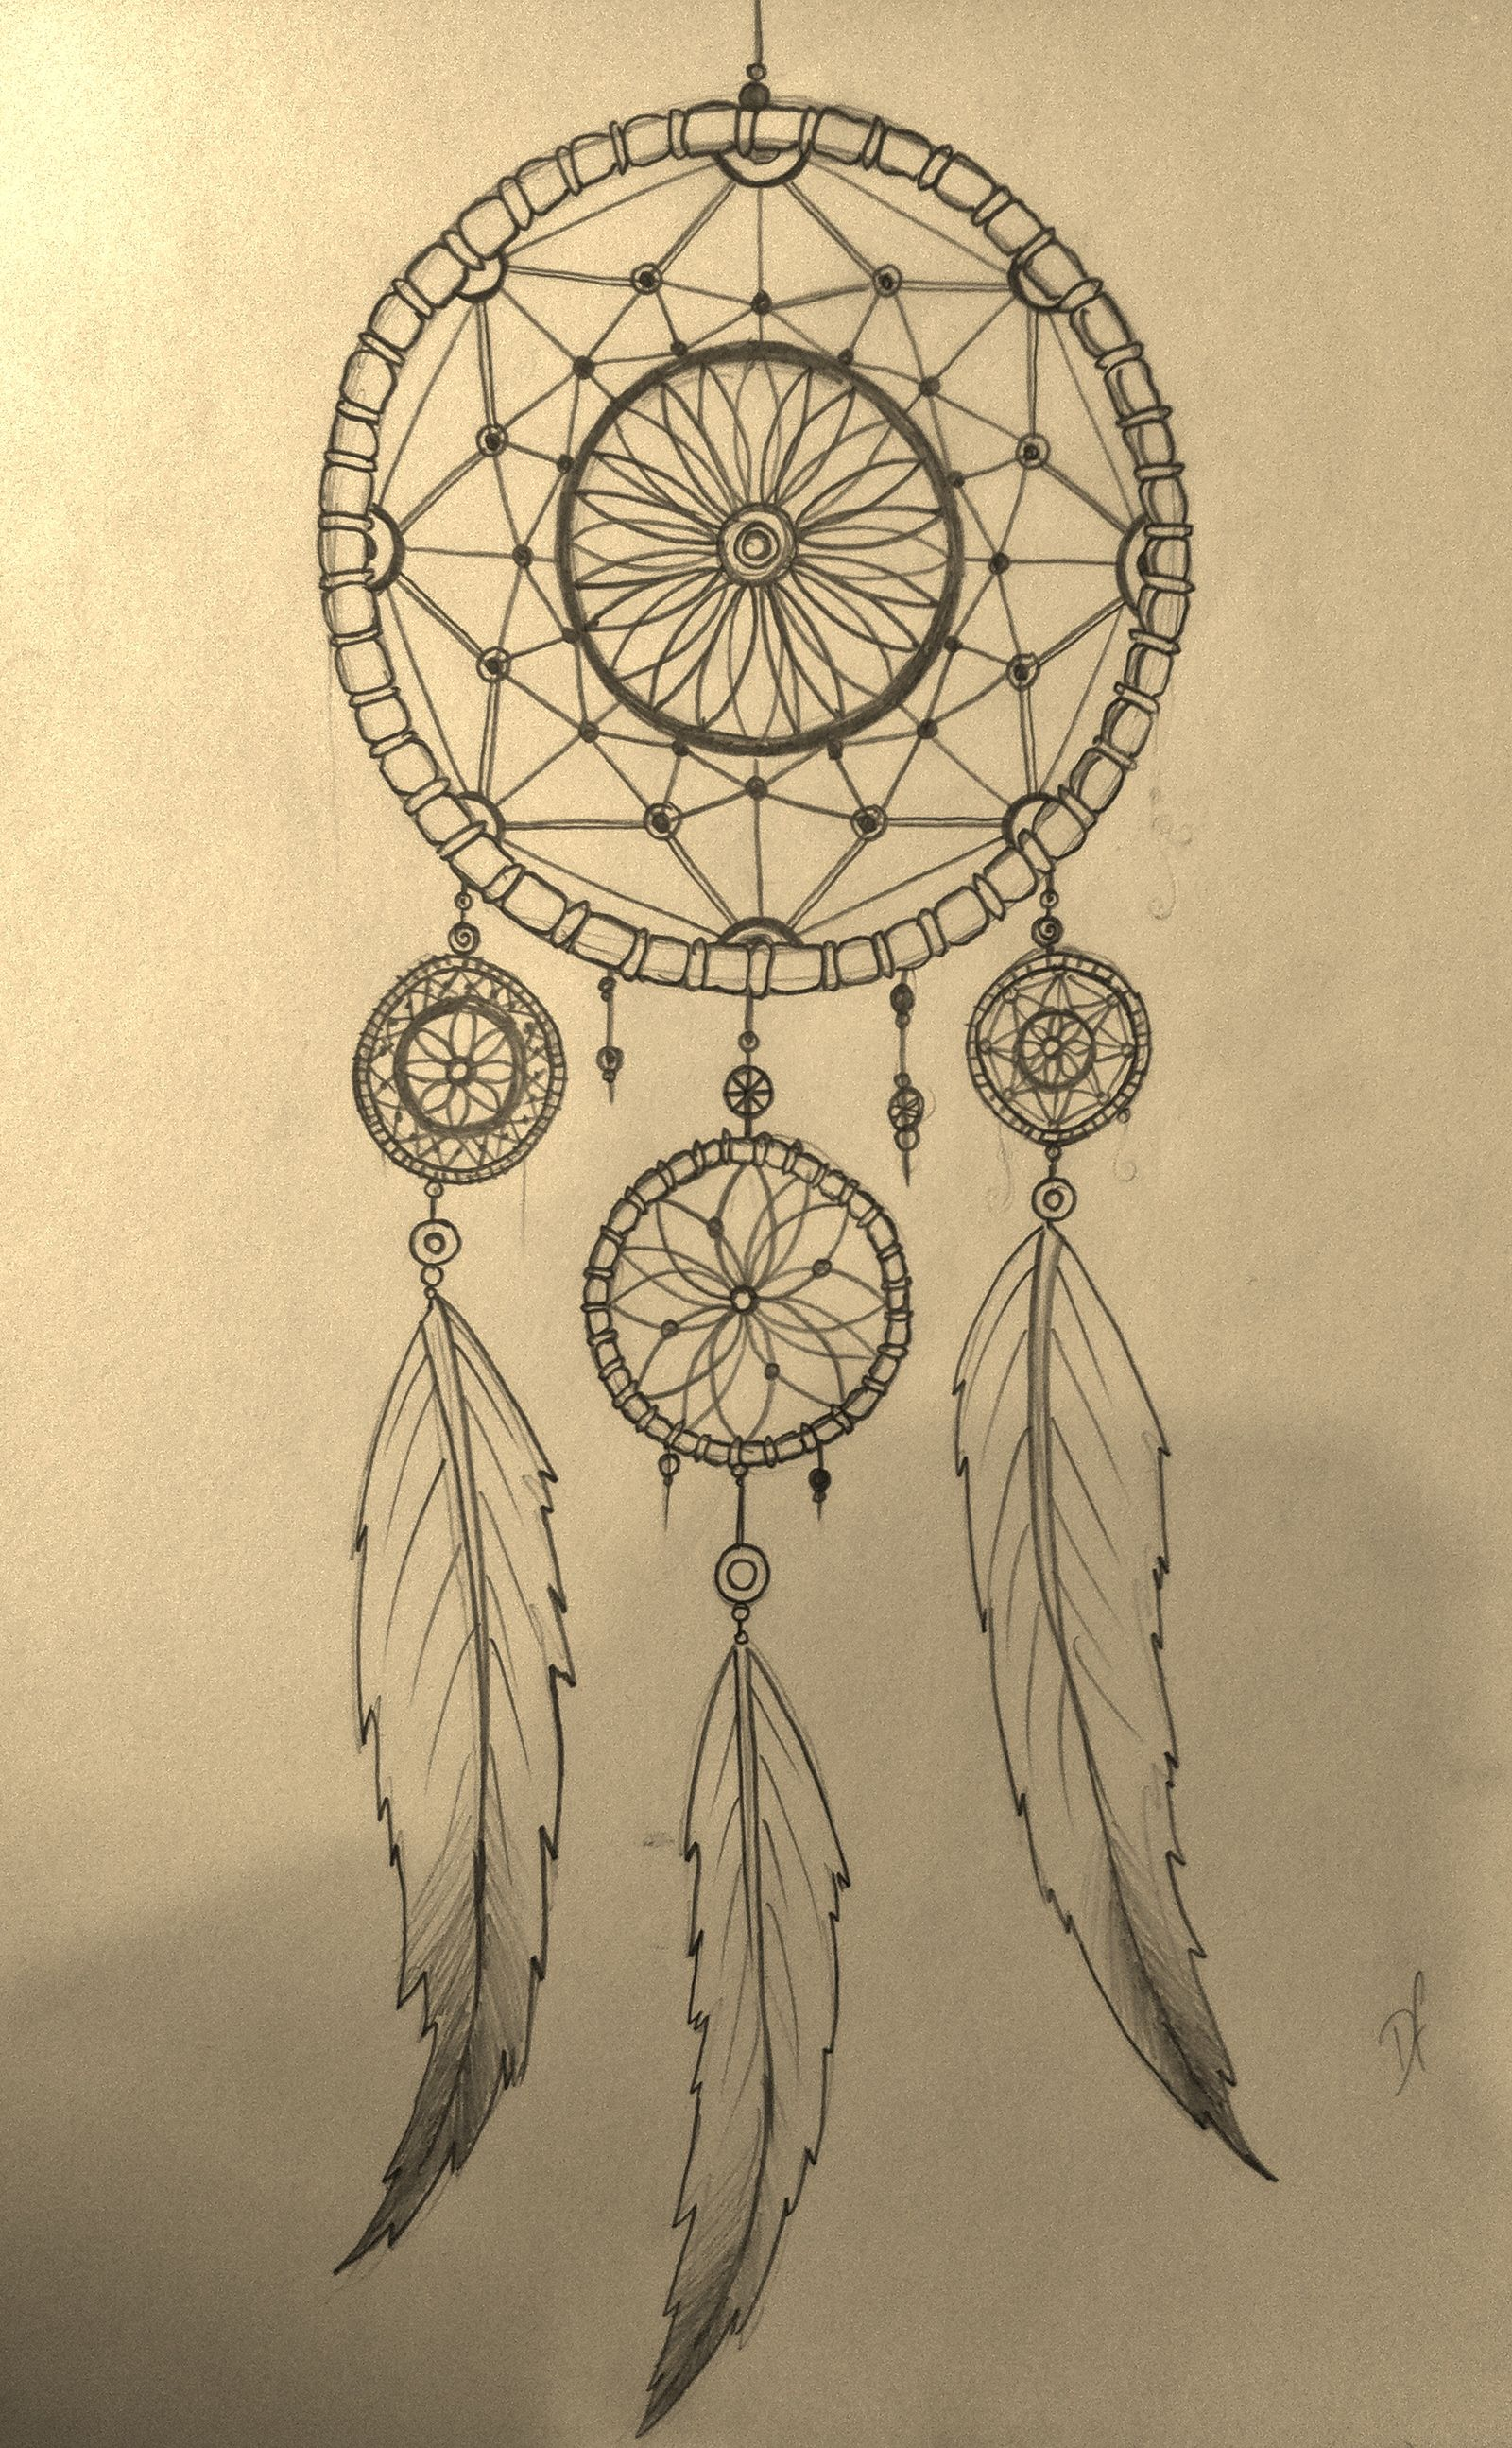 Simple Dream Catcher Drawing : simple, dream, catcher, drawing, Dream, Catcher, Design, Dreamcatcher, Drawing,, Drawing